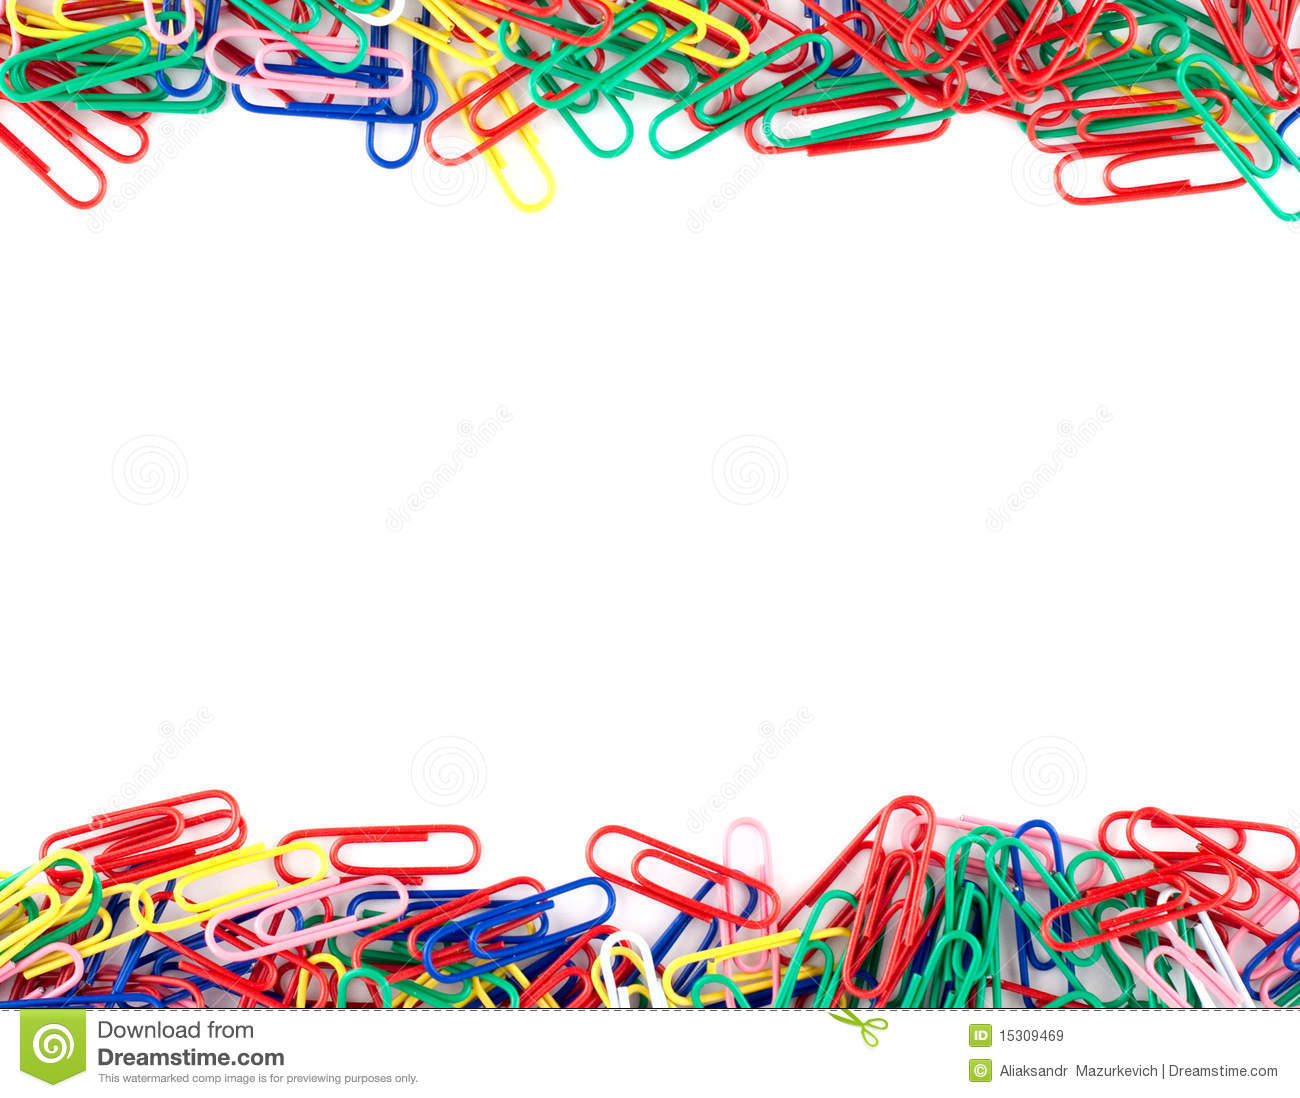 Colorful Paper Clips Royalty Free Stock Images - Image: 15309469: becuo.com/colored-paper-clips